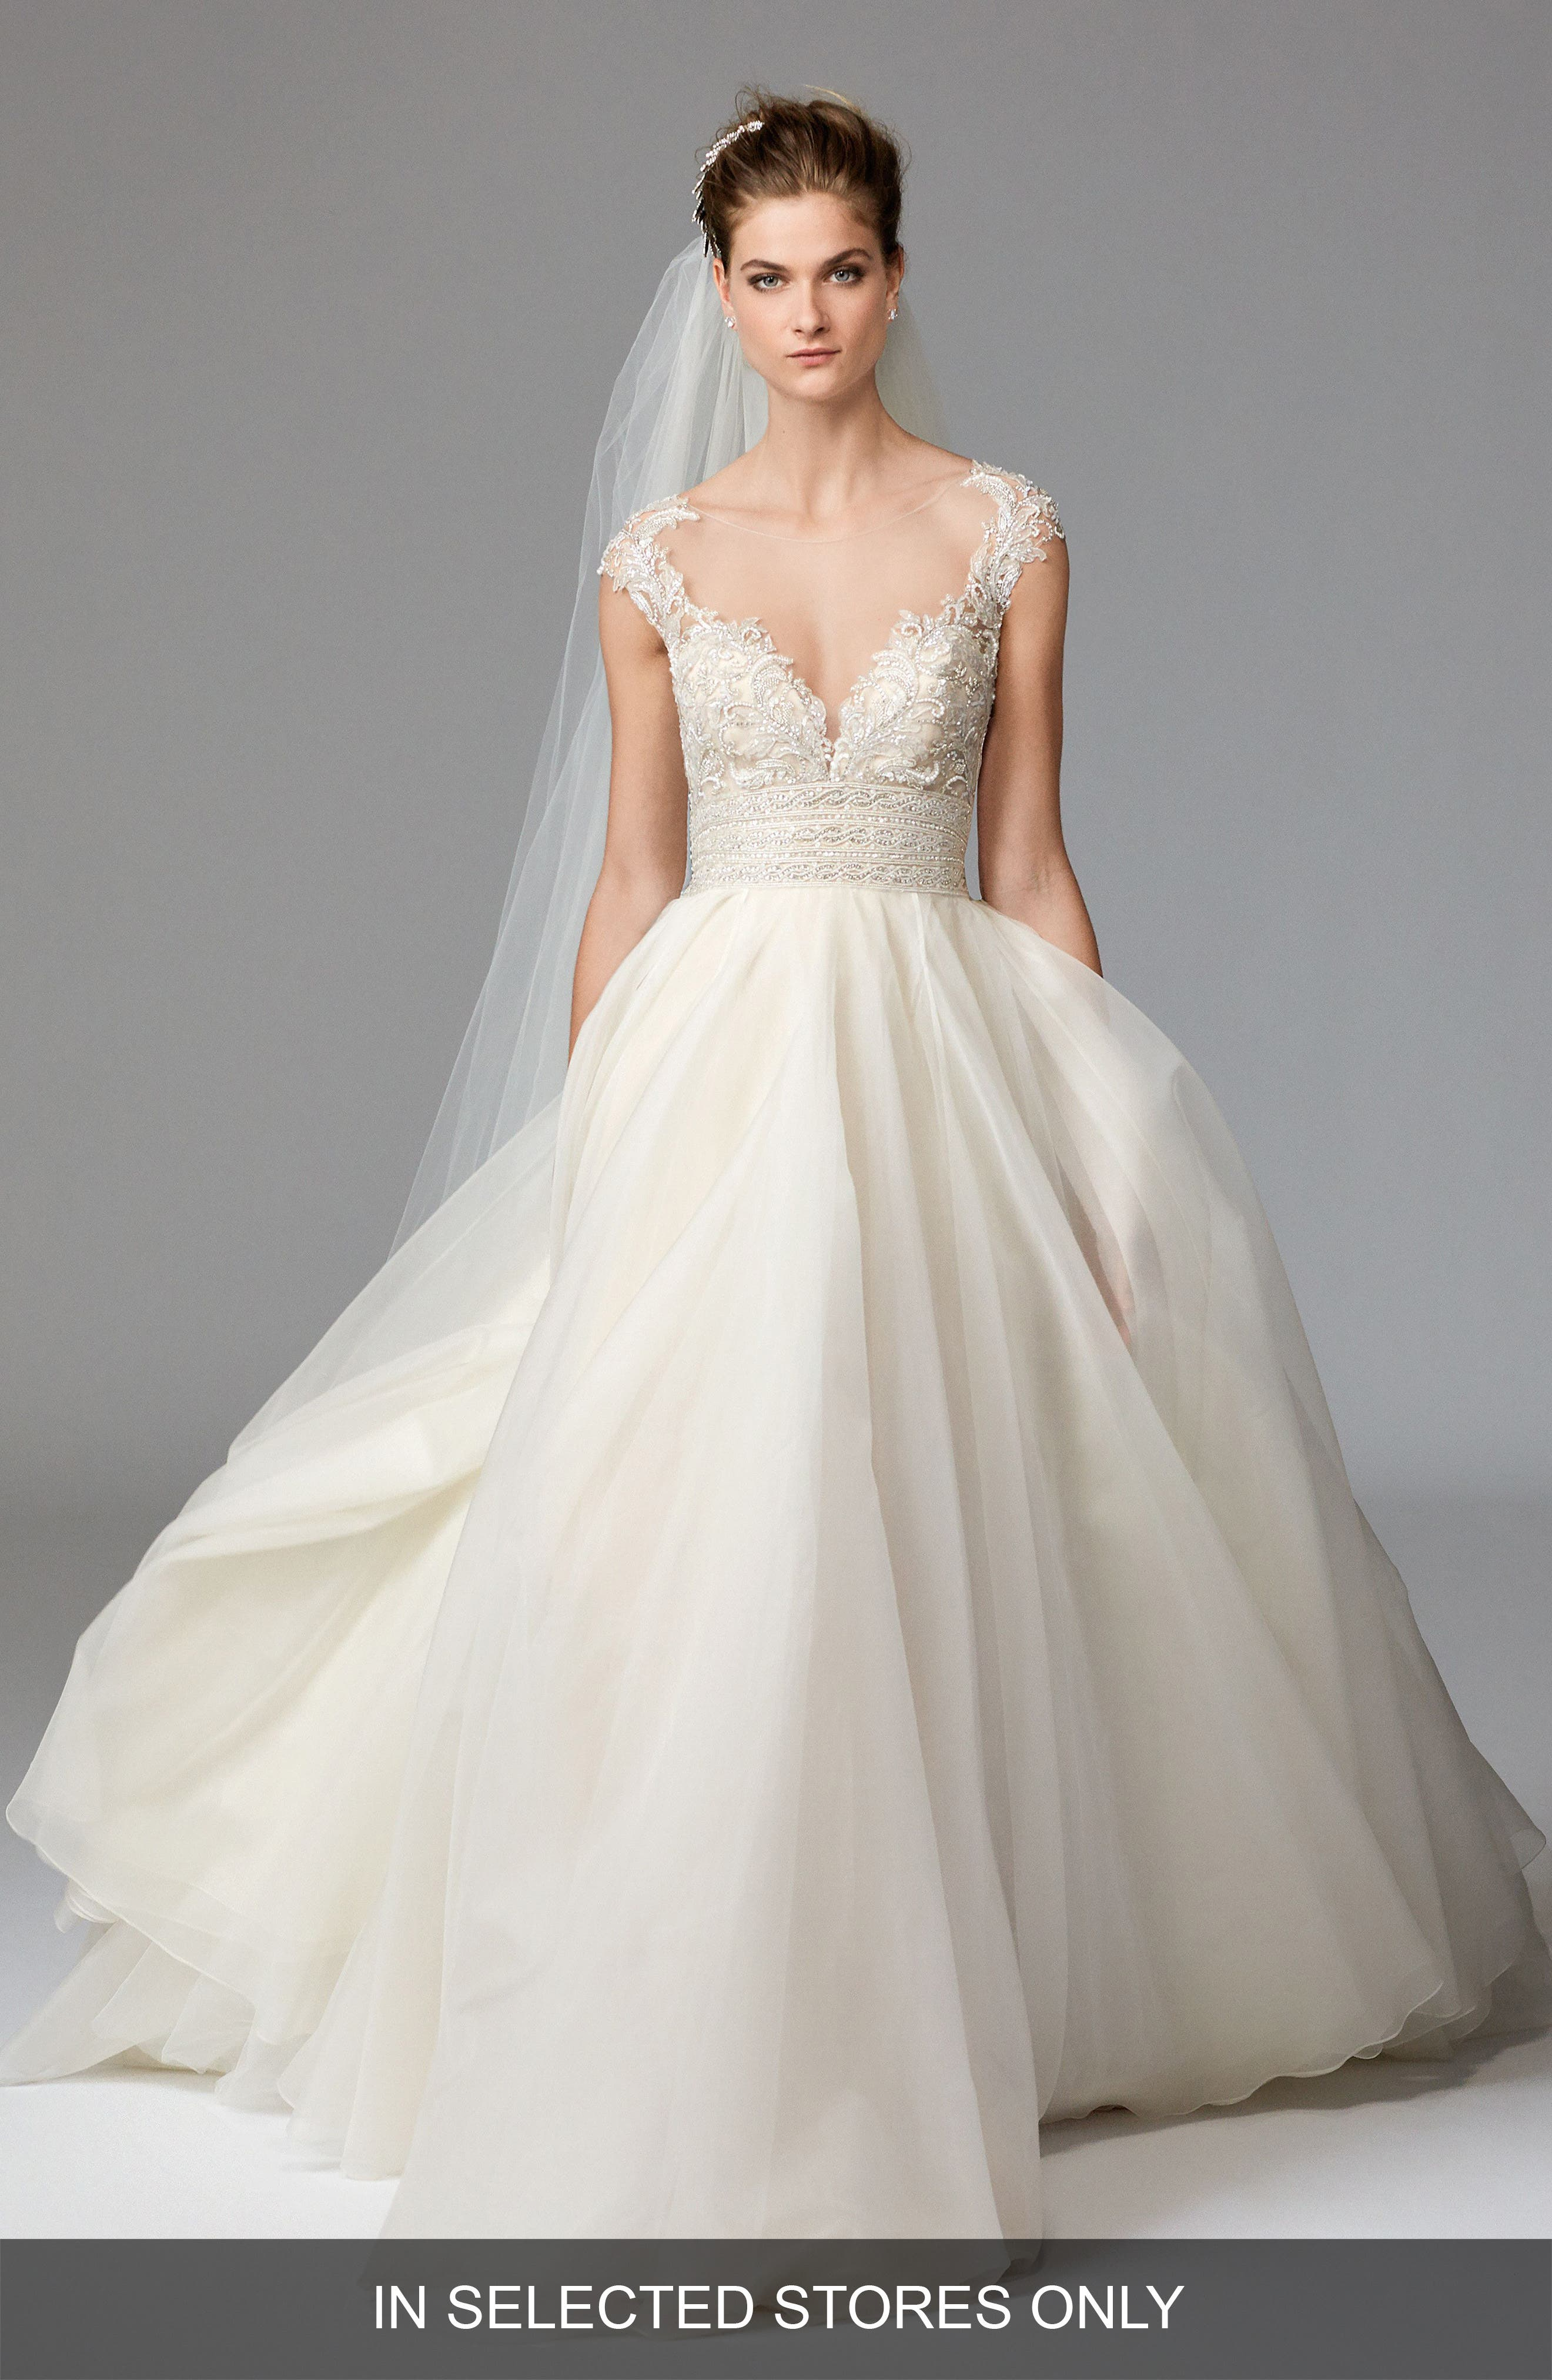 Alternate Image 1 Selected - Watters Azalea Lace & Organza Ballgown